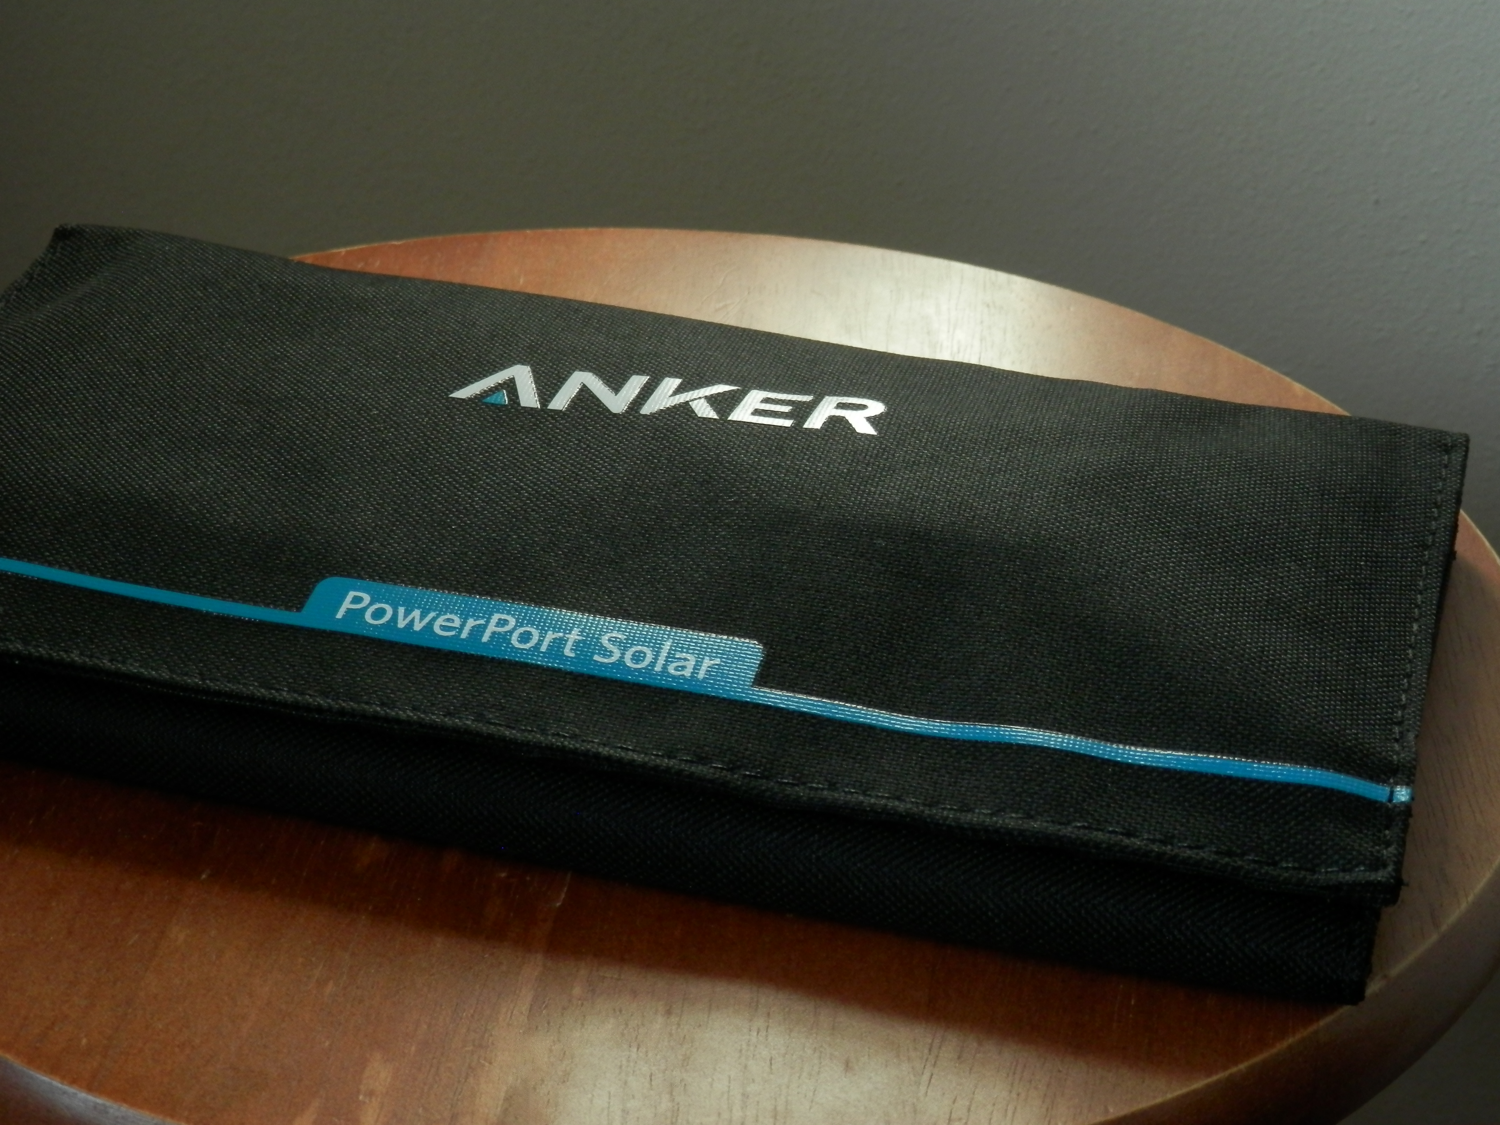 Anker PowerPort Solar Folded Up